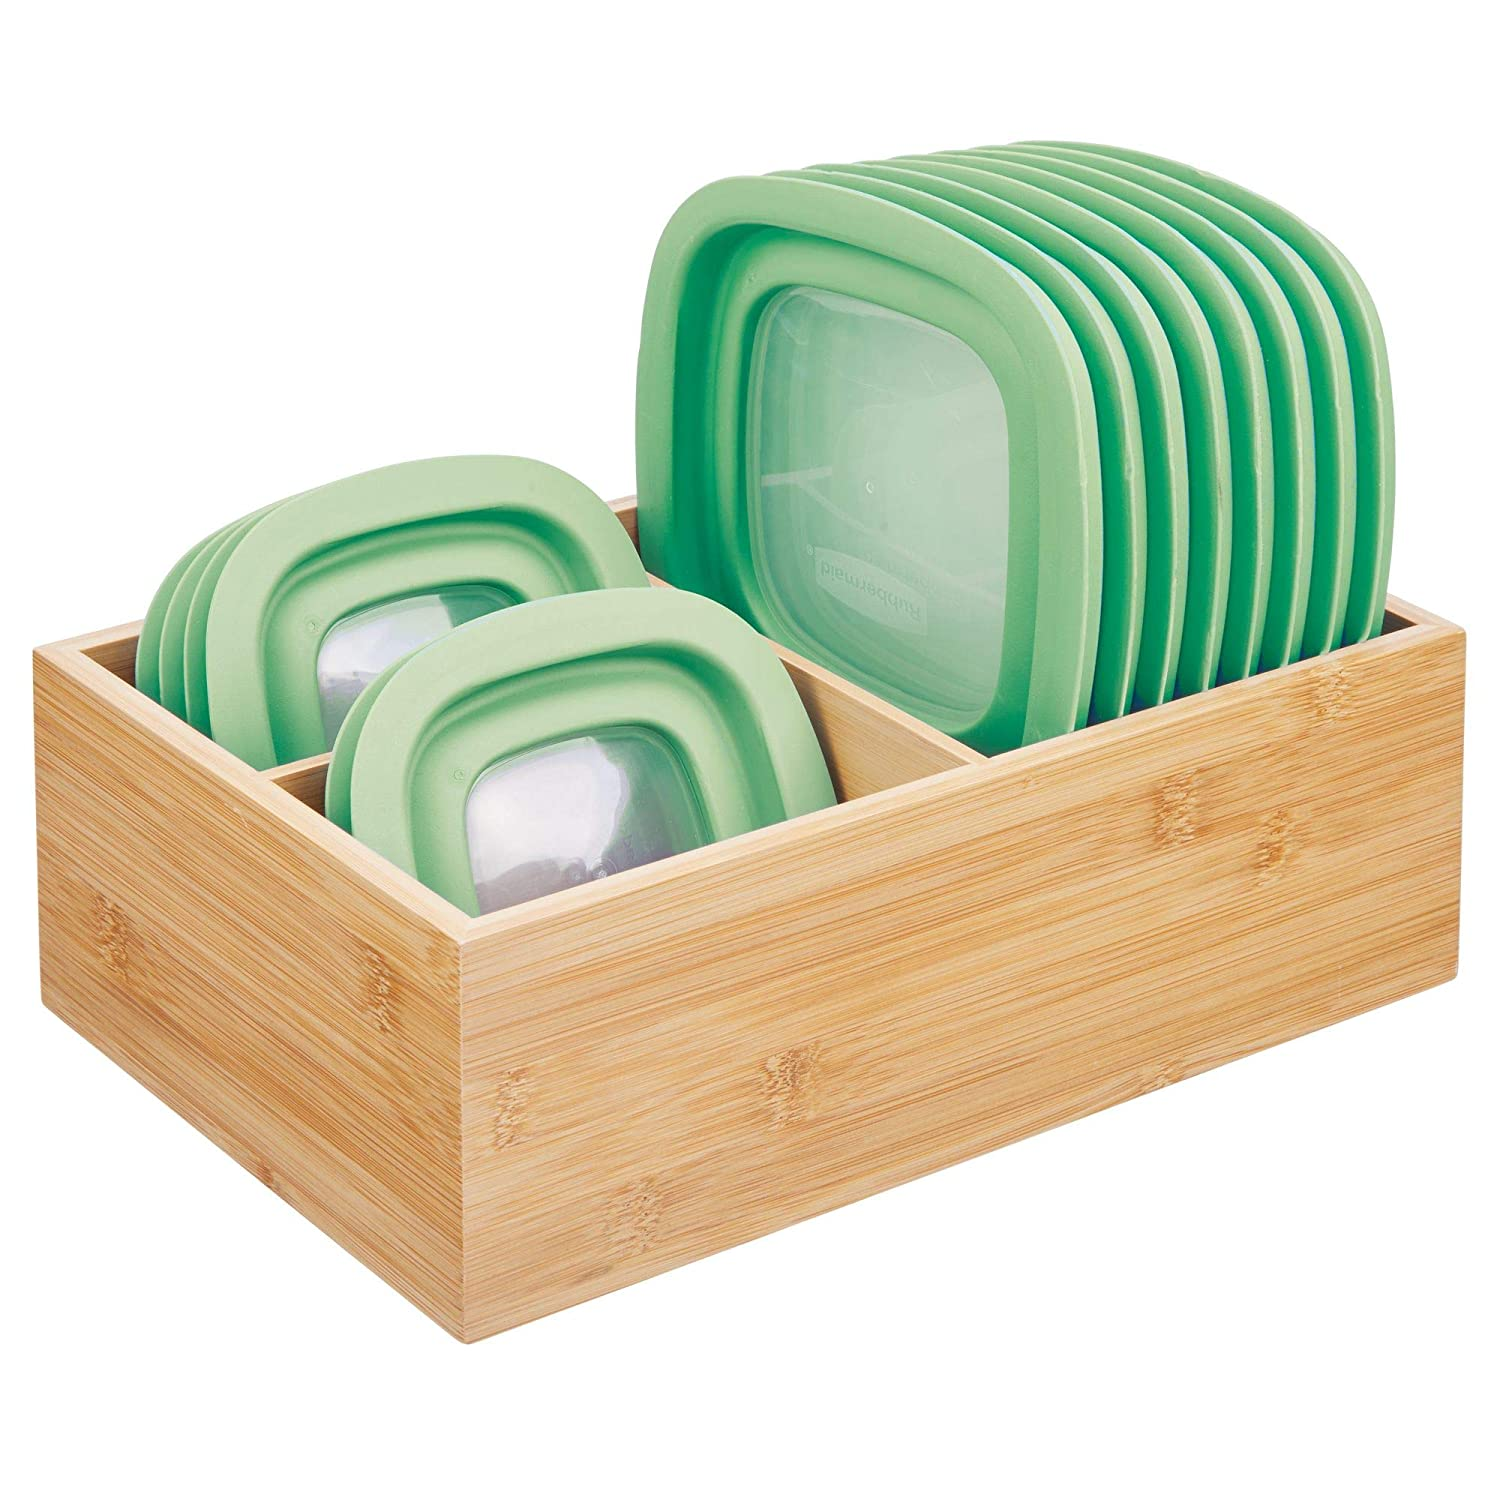 mDesign Bamboo Wood Kitchen Storage Bin Organizer for Food Container Lids and Covers - Use in Cabinets, Pantries, Cupboards - Large Divided Organizer with 3 Sections - Natural